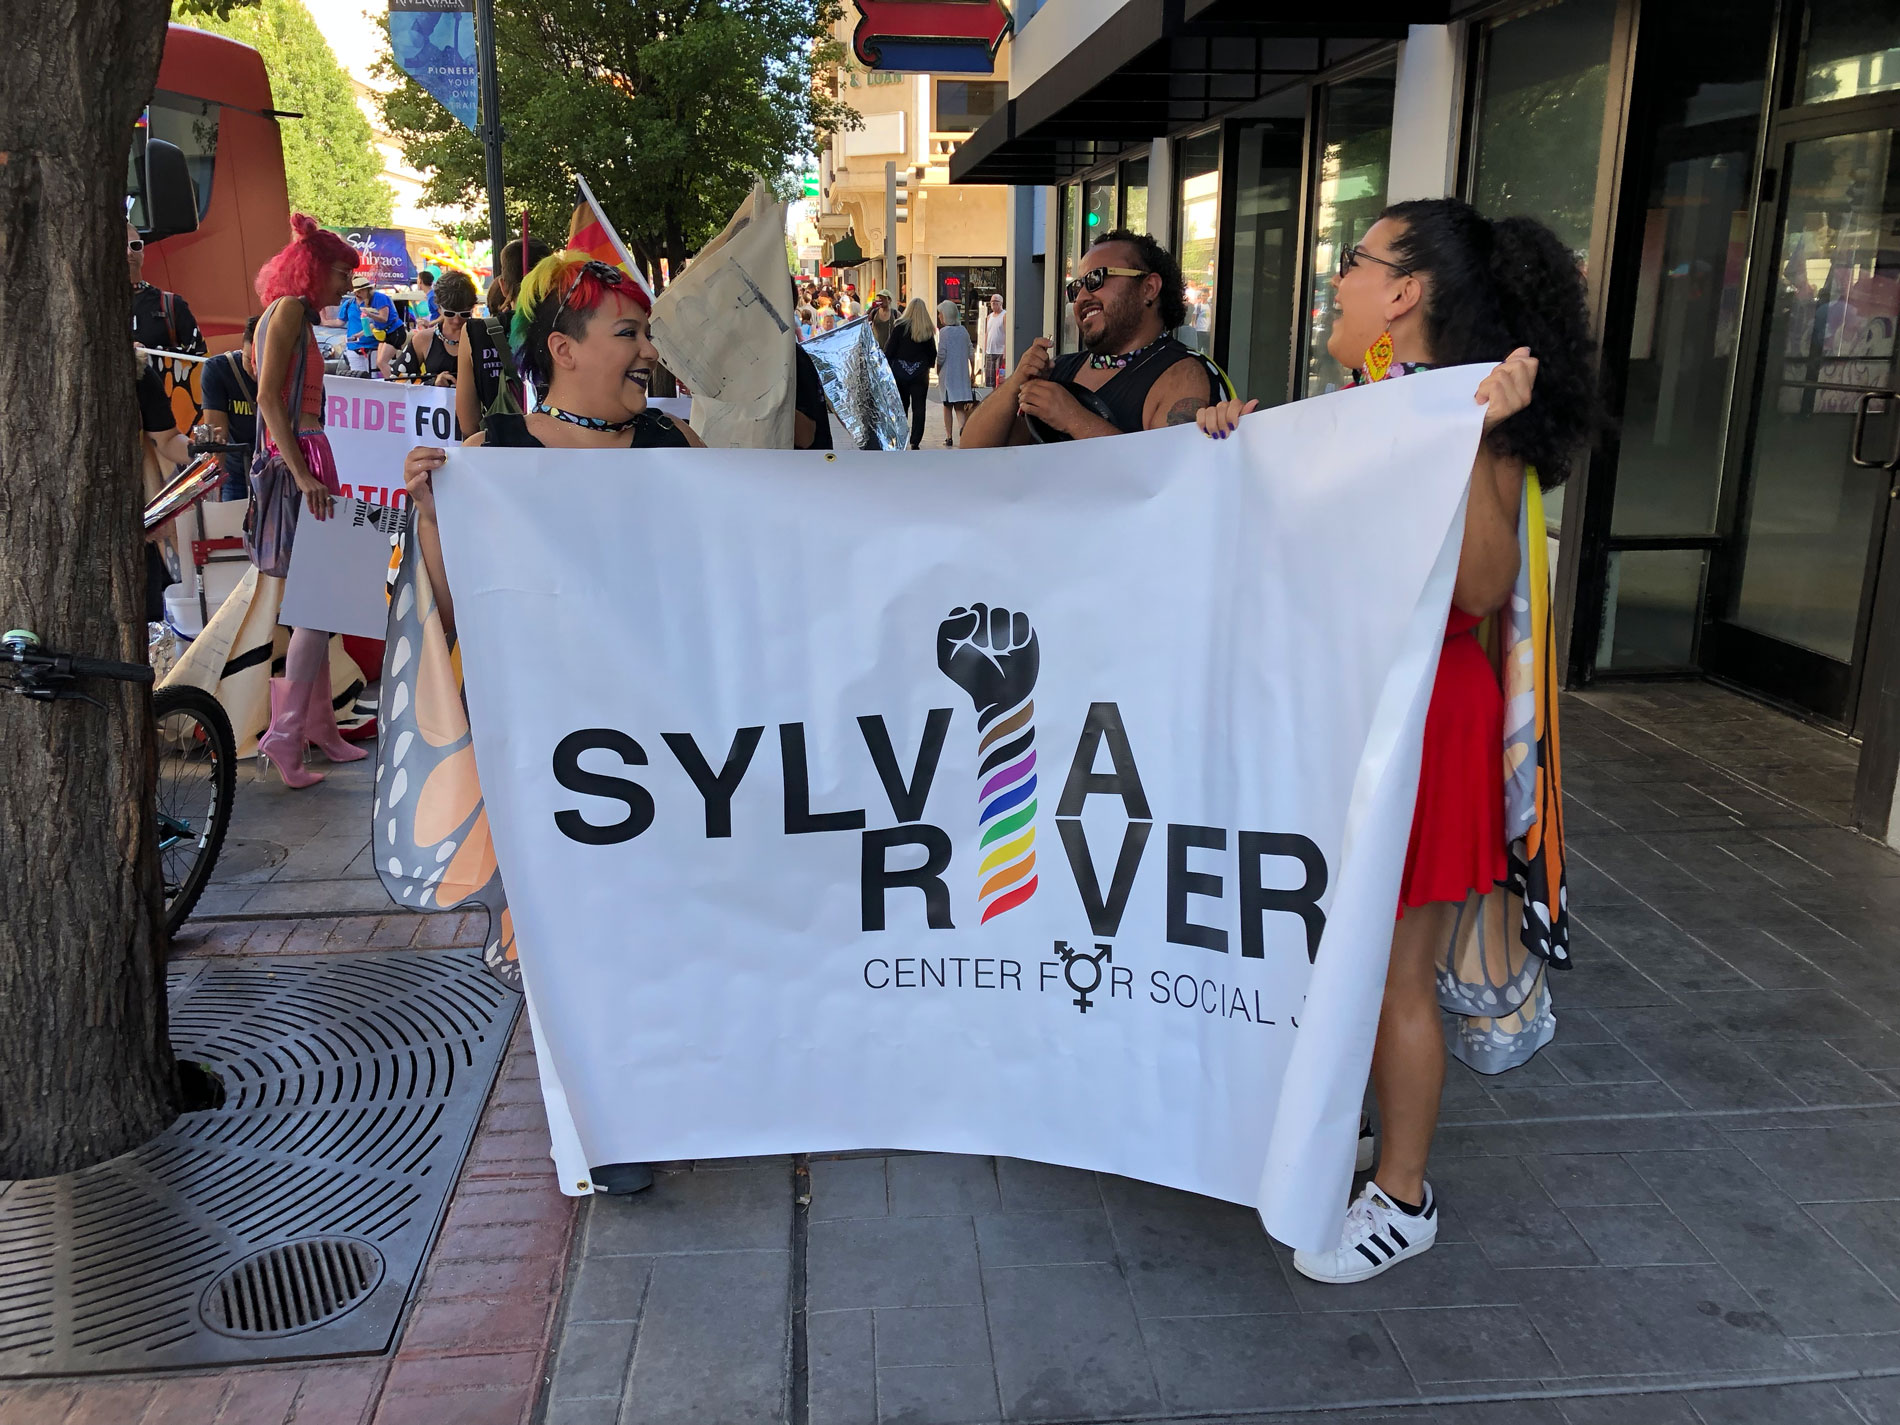 Members of the Sylvia Rivera Center for Social Justice (SRC) holding up their organization's banner during Pride